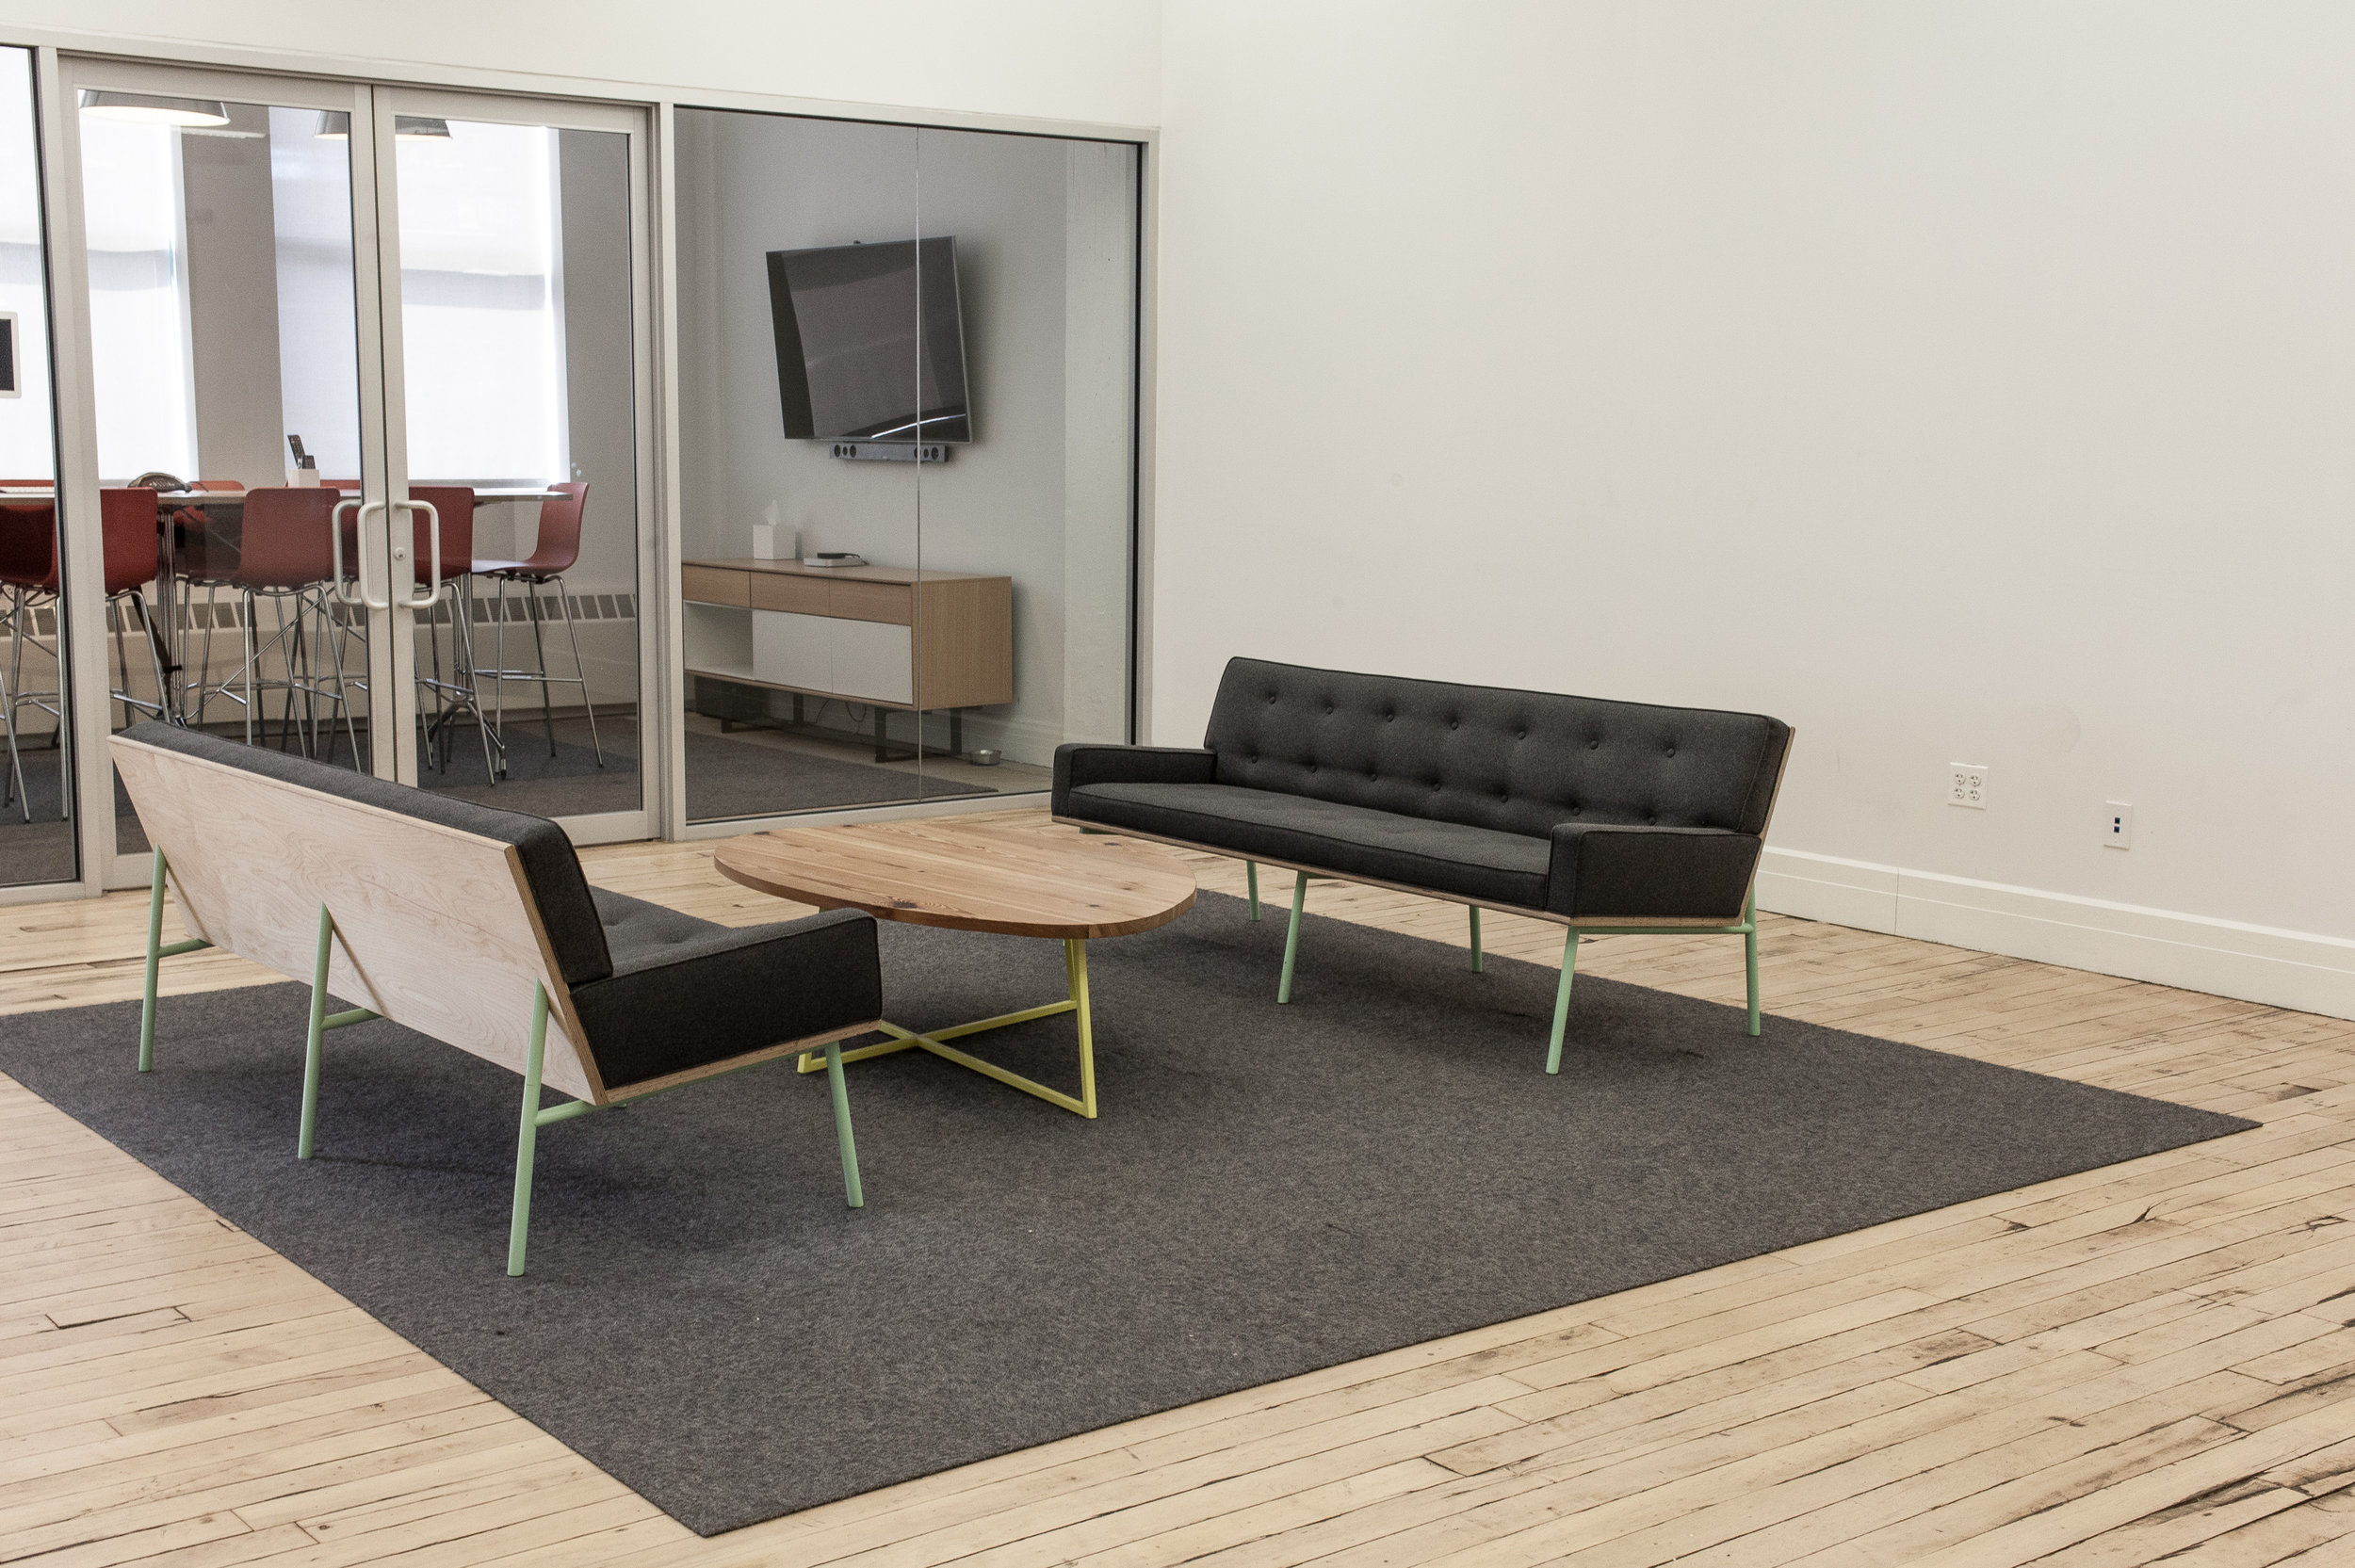 Shown: Custom DGD Sofas and  Noguchoff Coffee Table